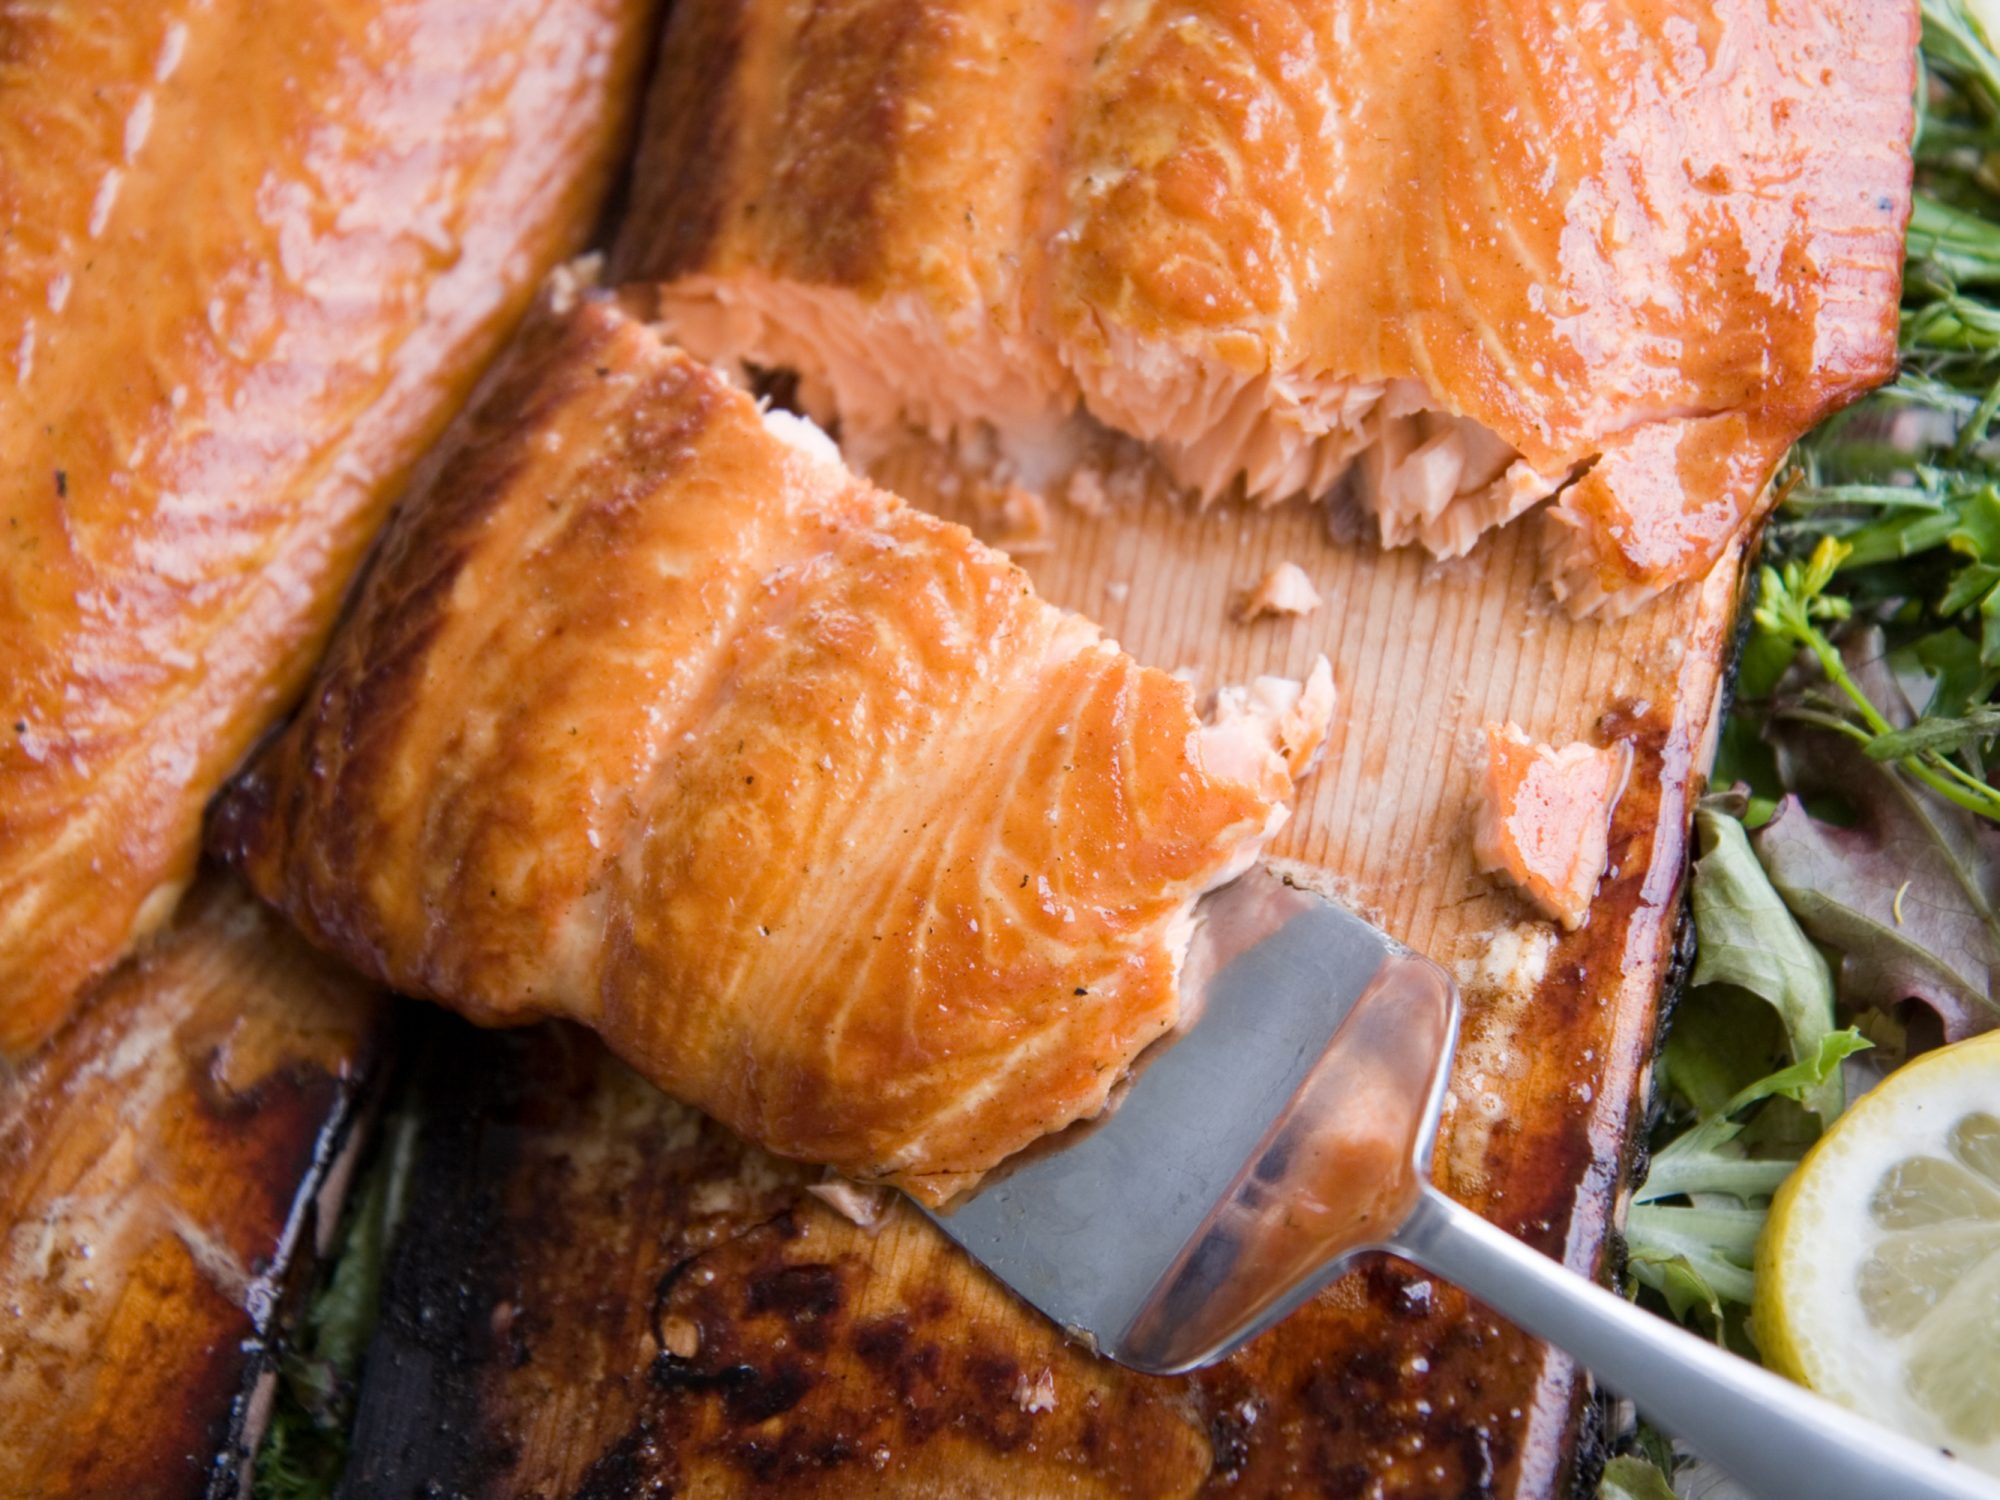 Tales from the Big Green Egg: Planked Salmon